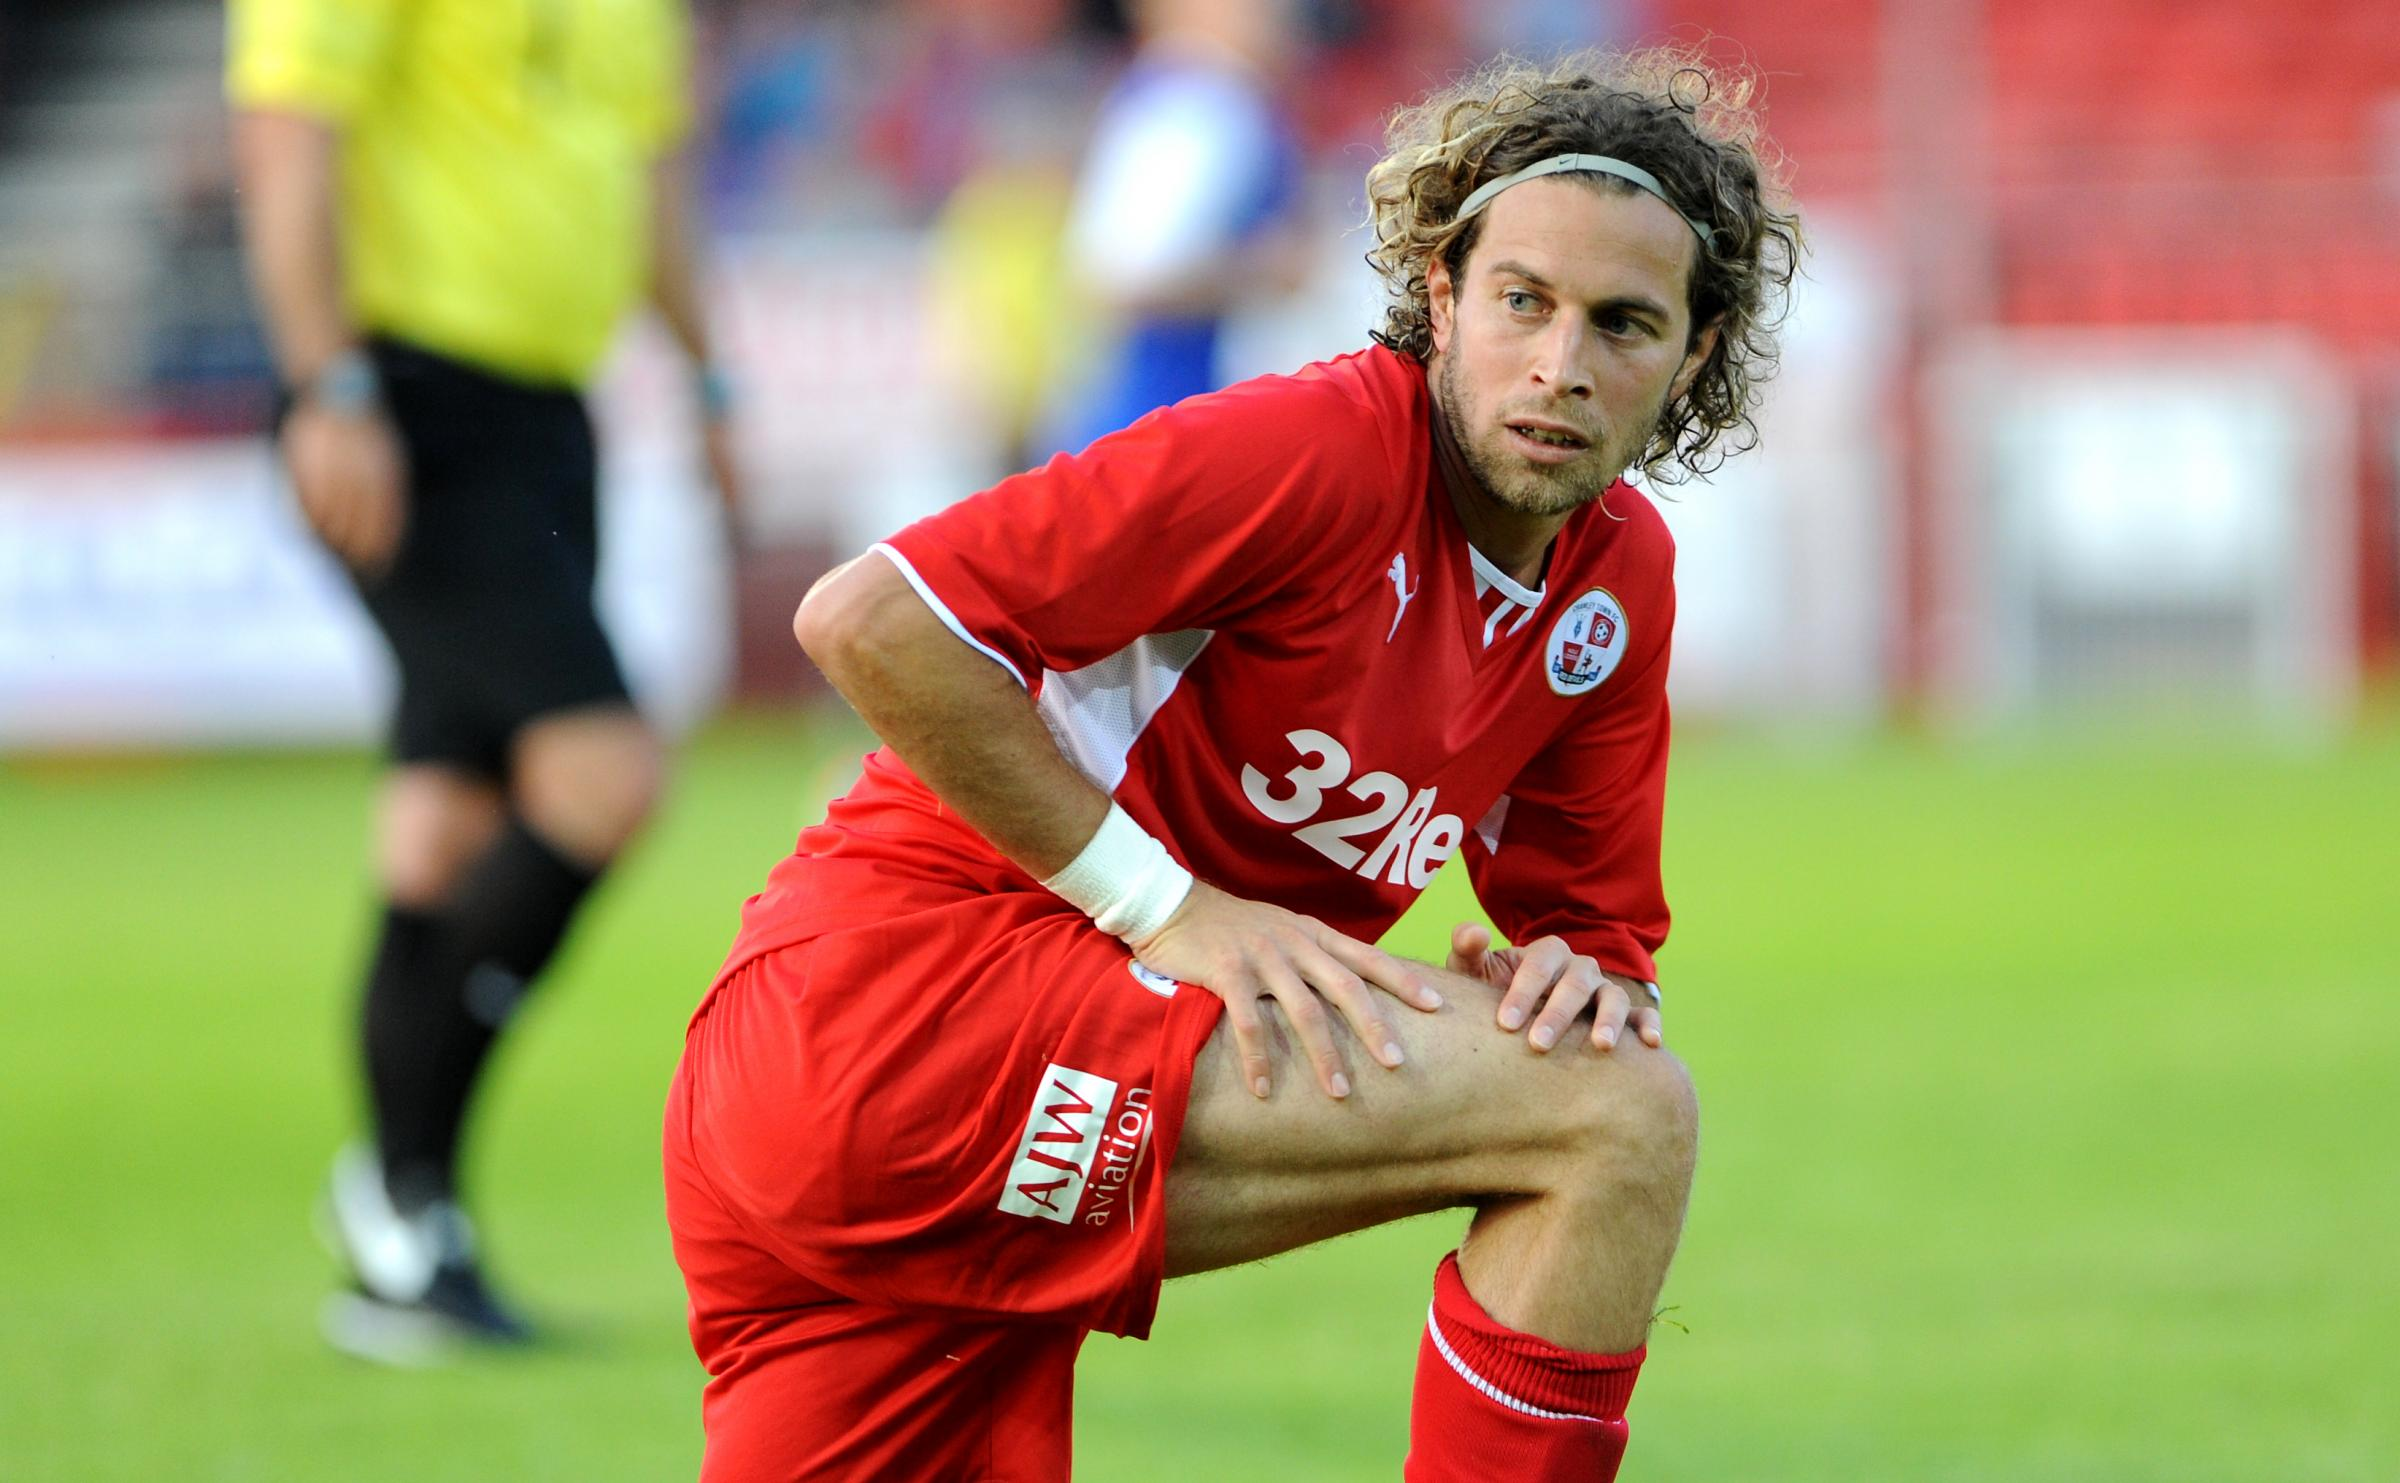 Sergio Torres is one of 11 players released by Crawley